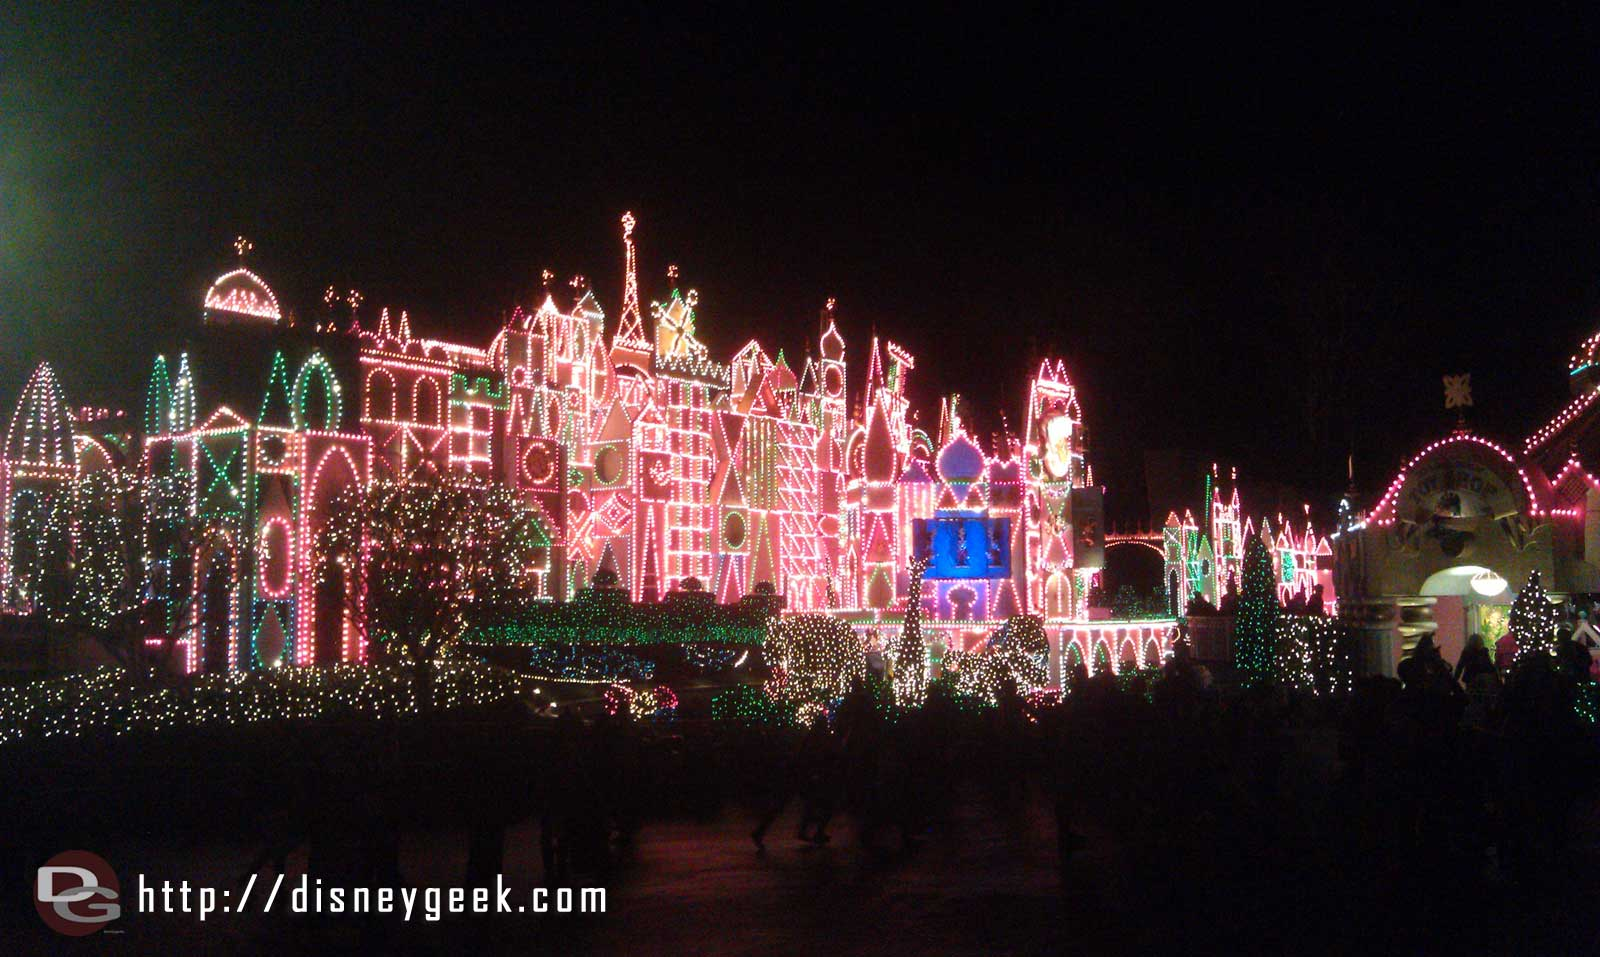 This is the last weekend to enjoy Small World Holiday until Nov.